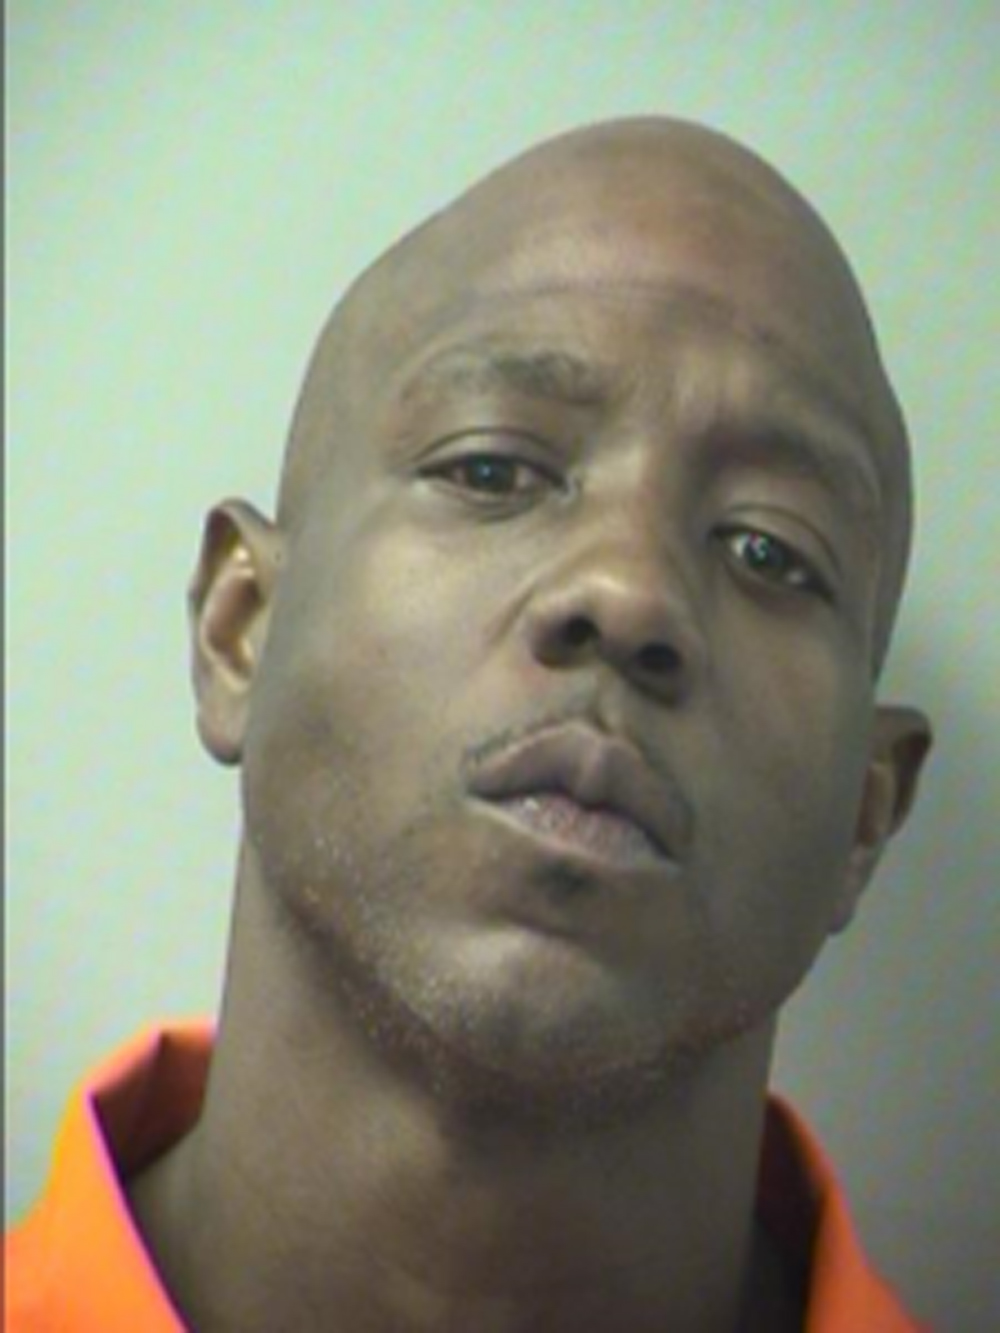 David Blackmon (Okaloosa County Sheriff's Office)